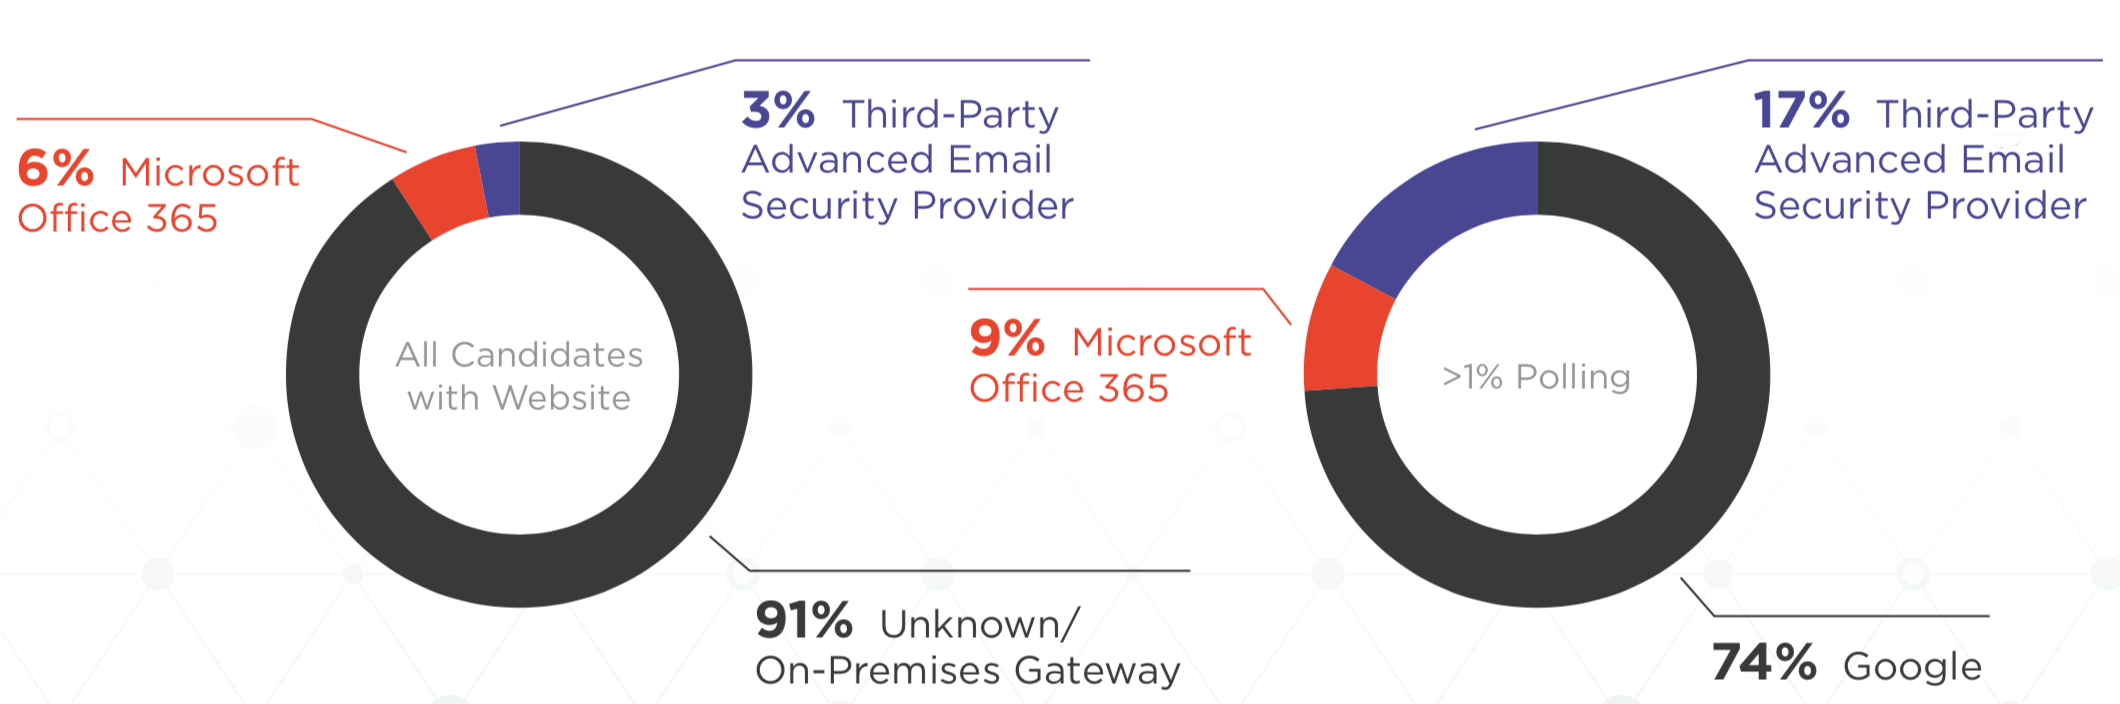 presidential-candidates-email-security-2019